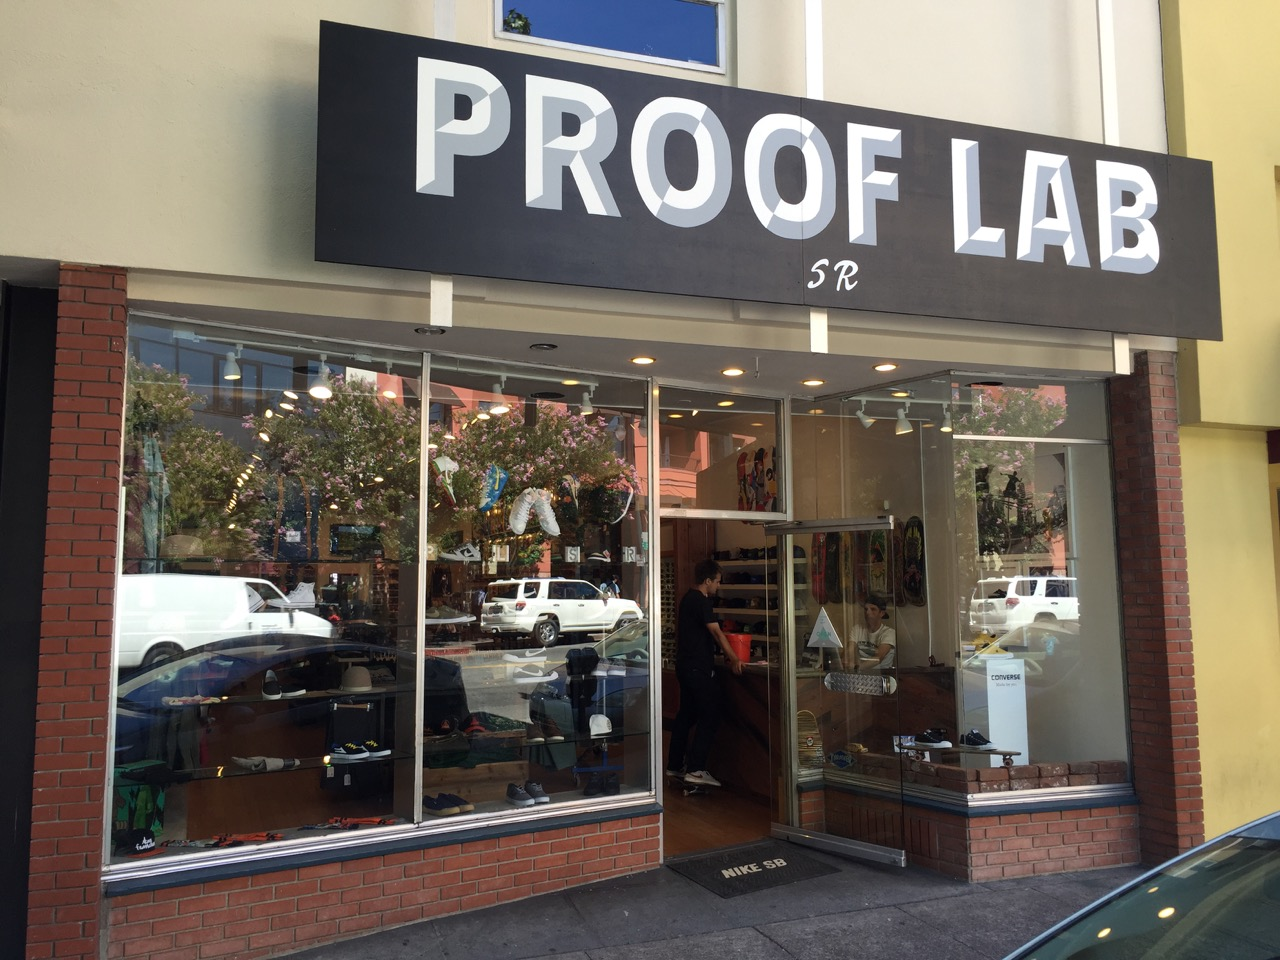 Our newest location, PLSR, is in the heart of 4th street San Rafael and proudly serves the thriving local skateboarding community. The 2,000 sq/ft shop features all of your favorite names in the game from Nike SB, HUF, Krooked, Independent, Converse,Real, Anti Hero, Welcome, Vans, Thrasher and more. Come in and get set up by the pros.